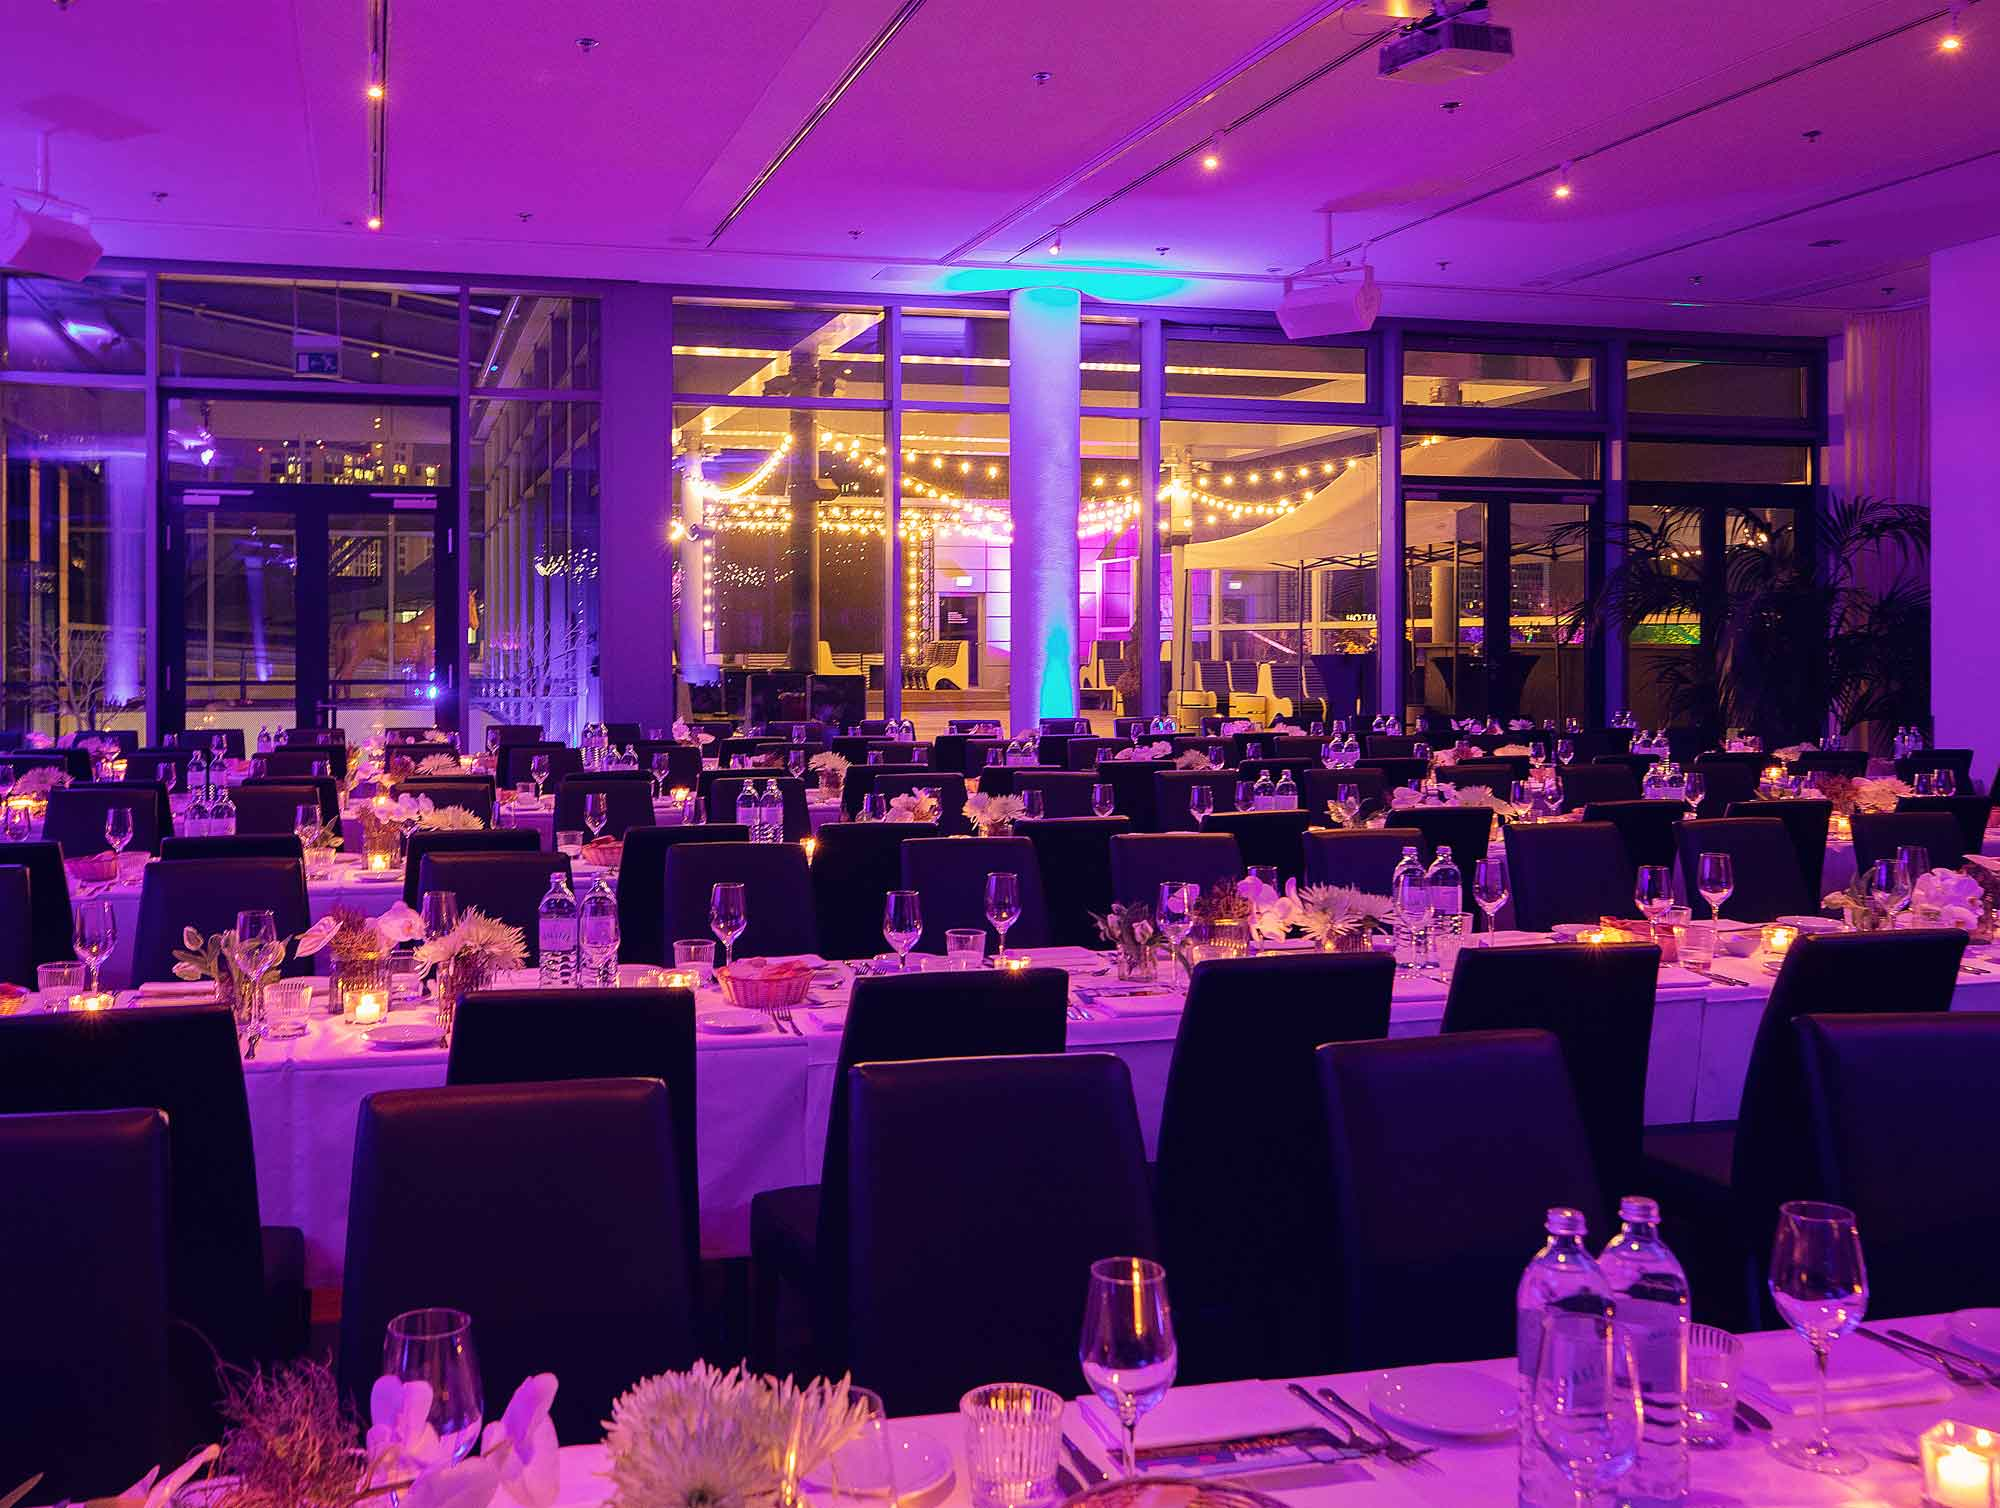 Eventlocation in Berlin